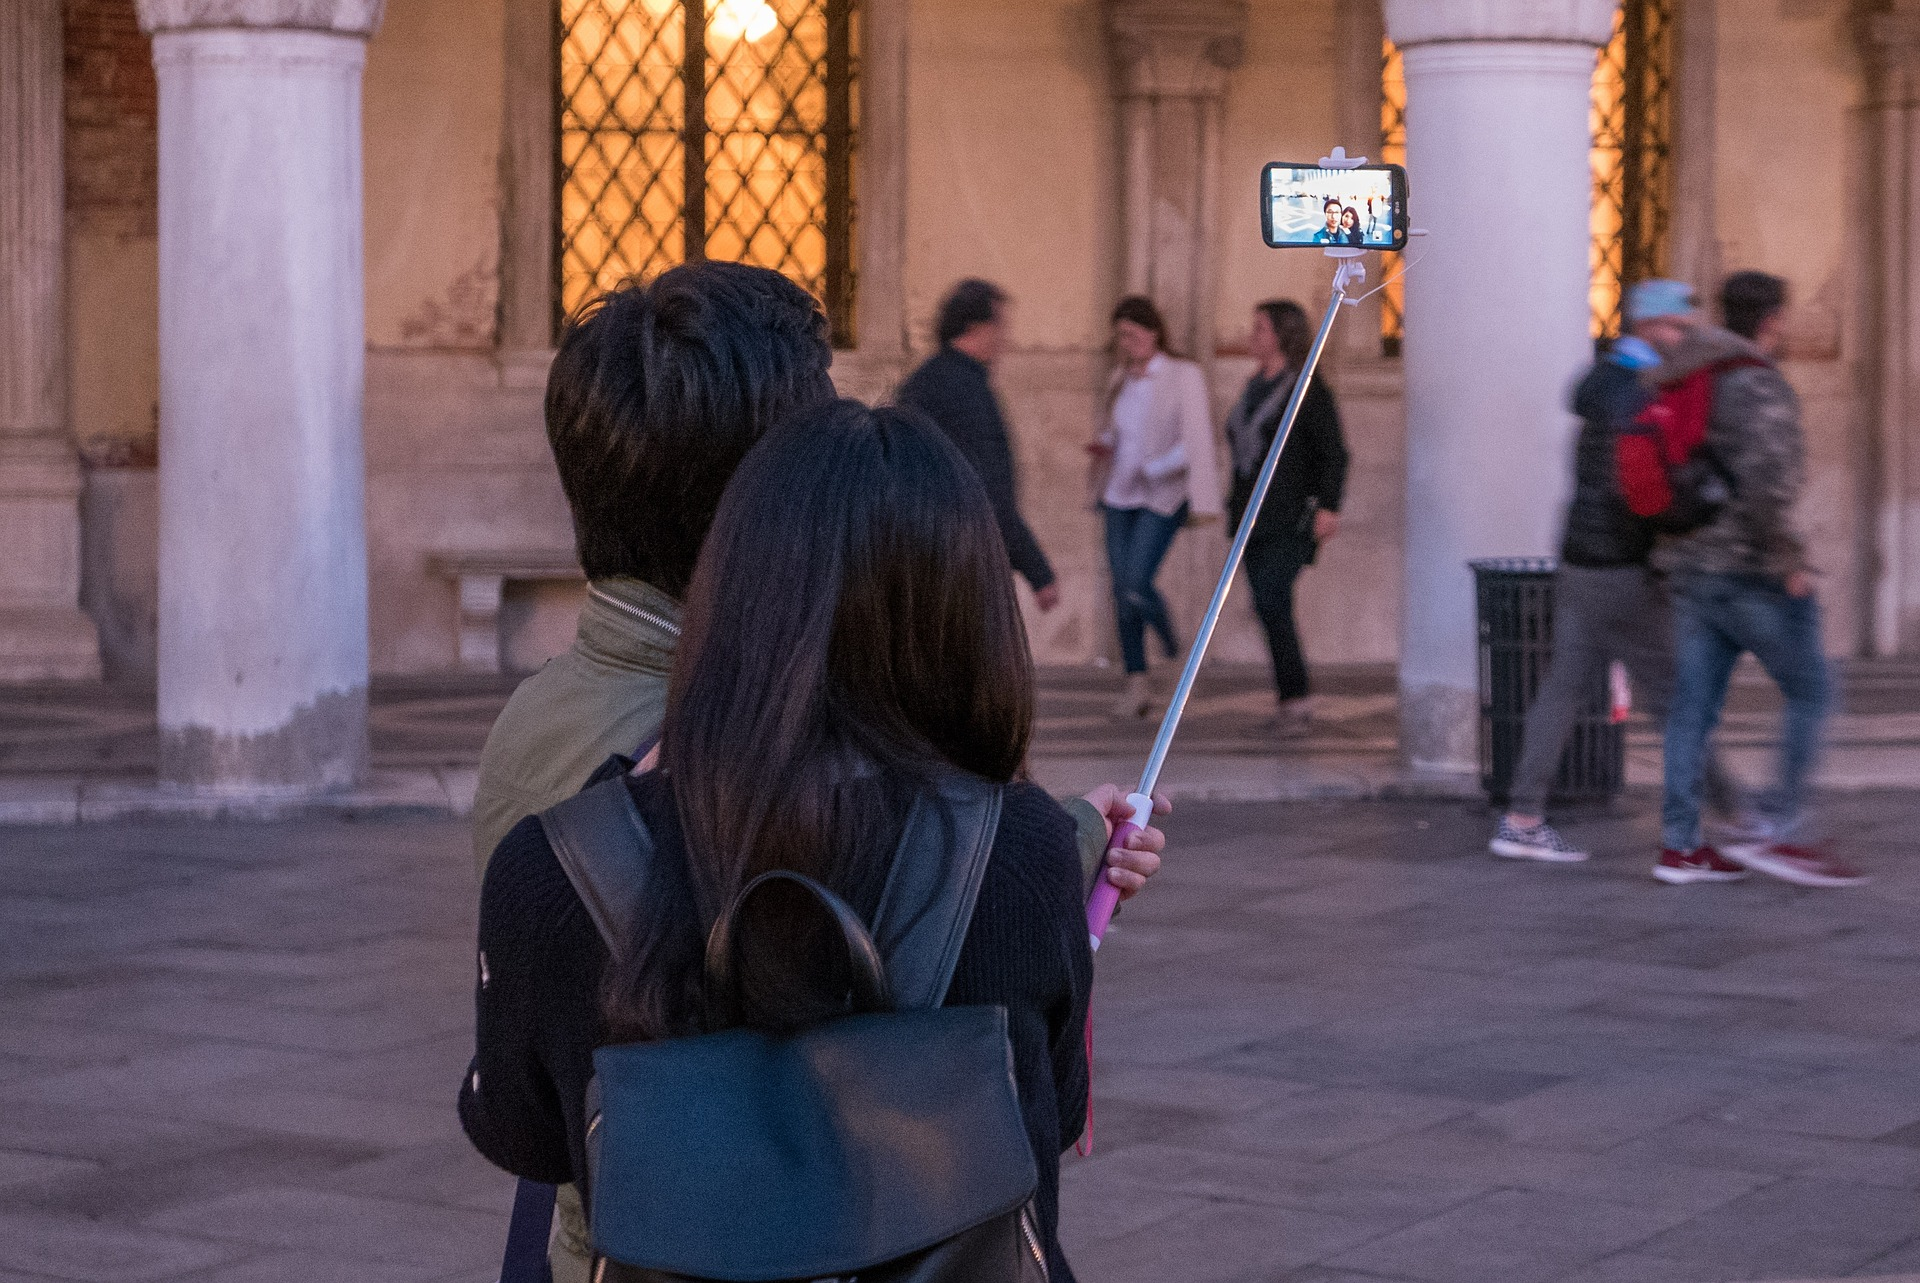 Couple taking pictures infront of building with selfie stick